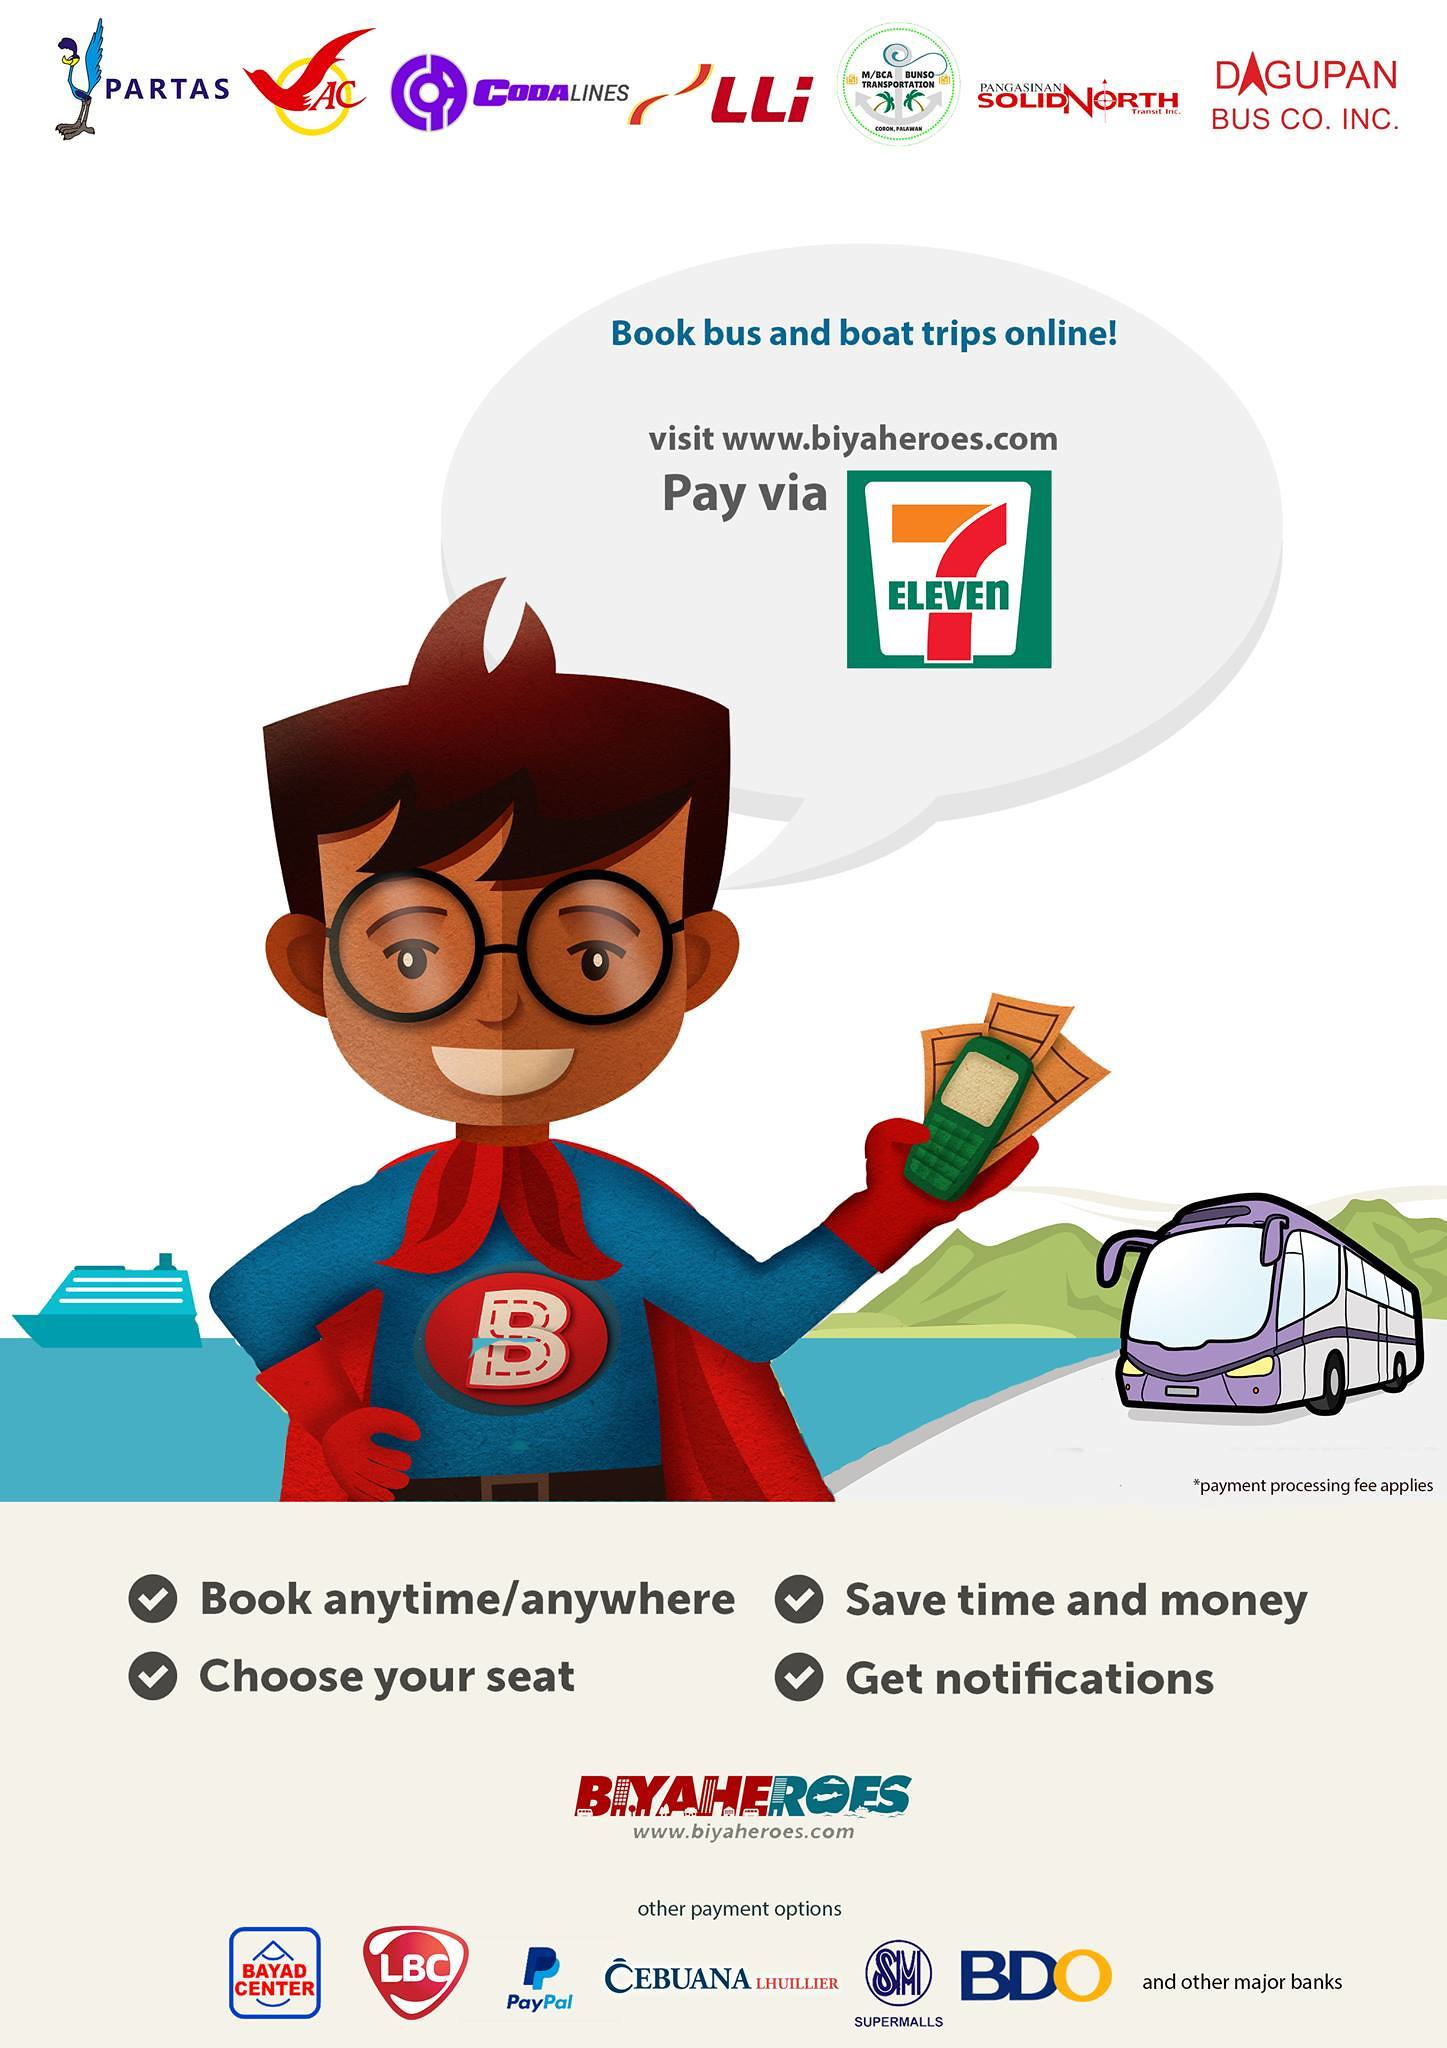 Biyaheroes accepts 7-Eleven payment